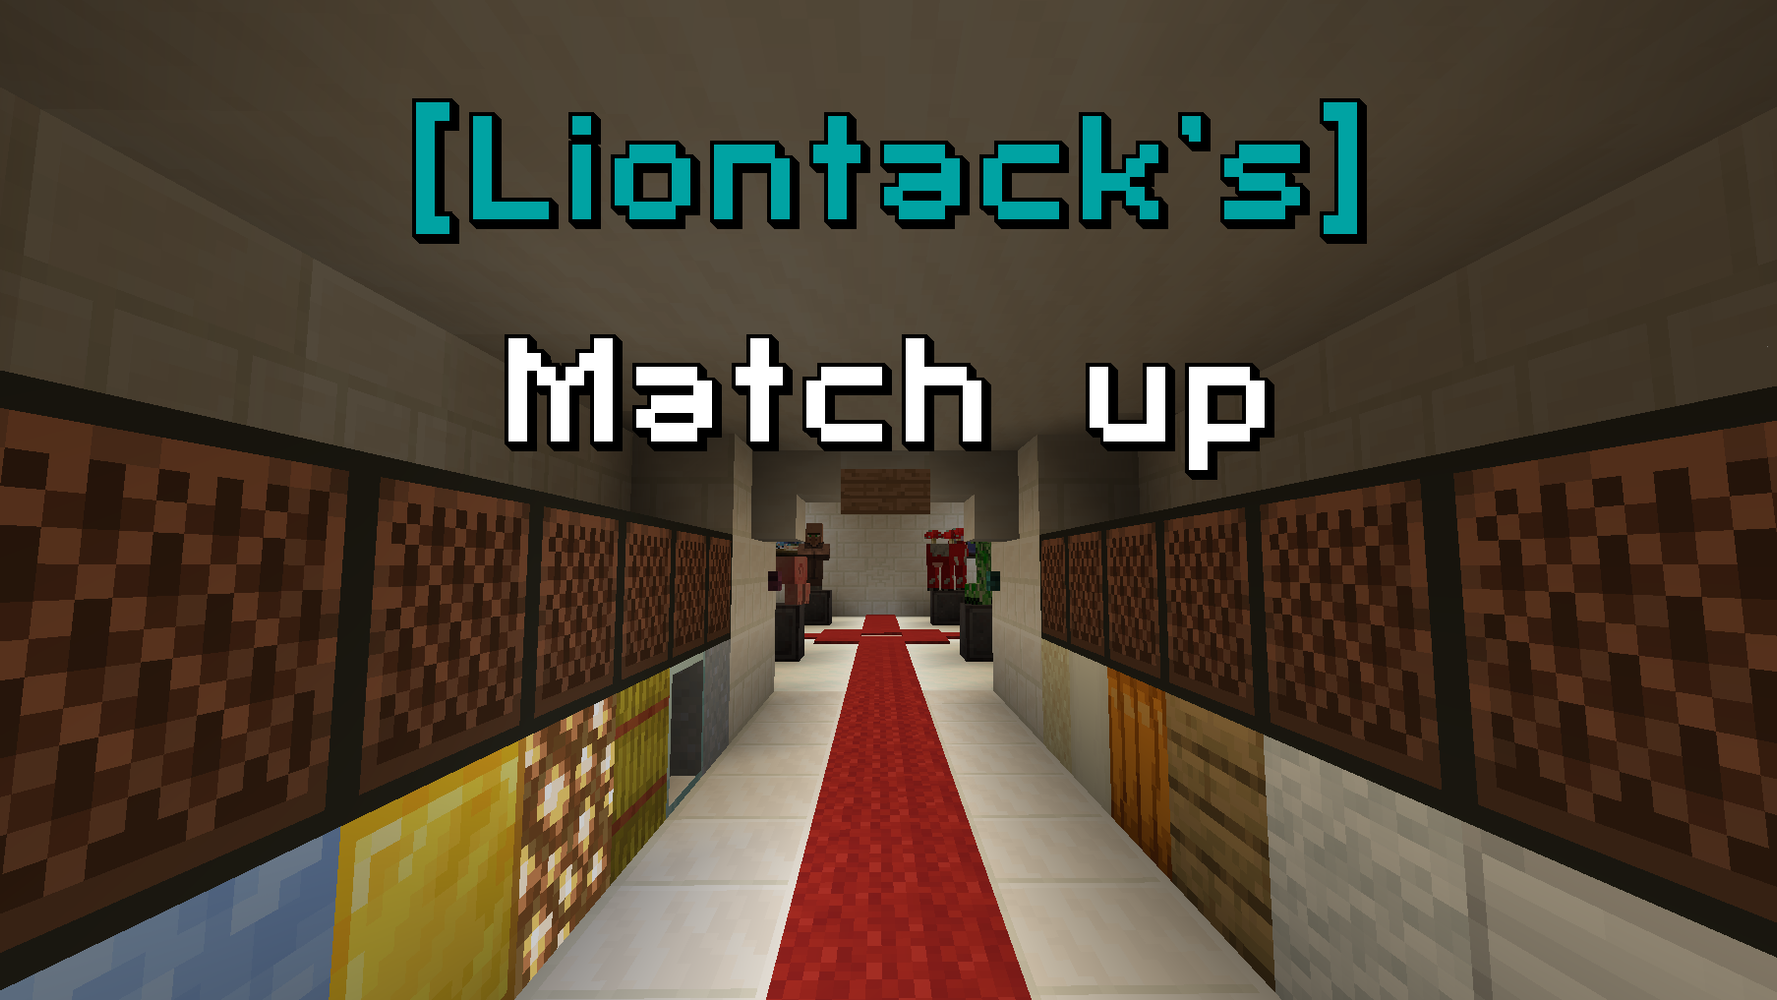 [Liontack's] Match up